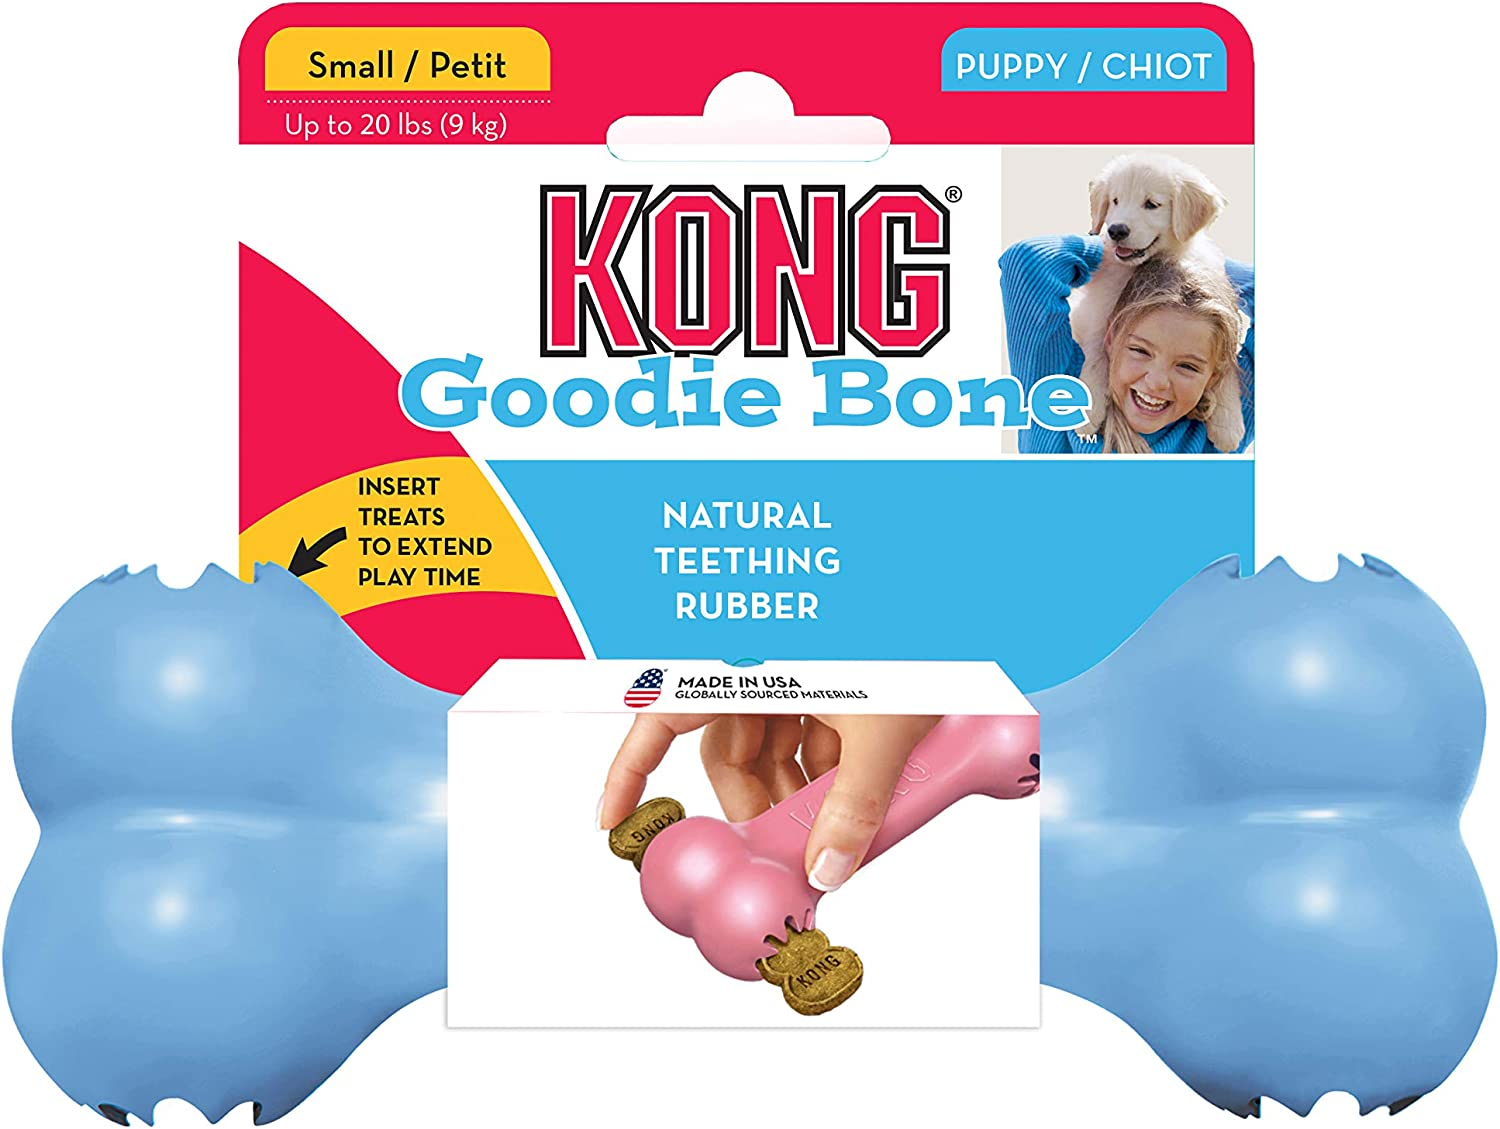 Fever Kong Goodie Bone Puppy Small